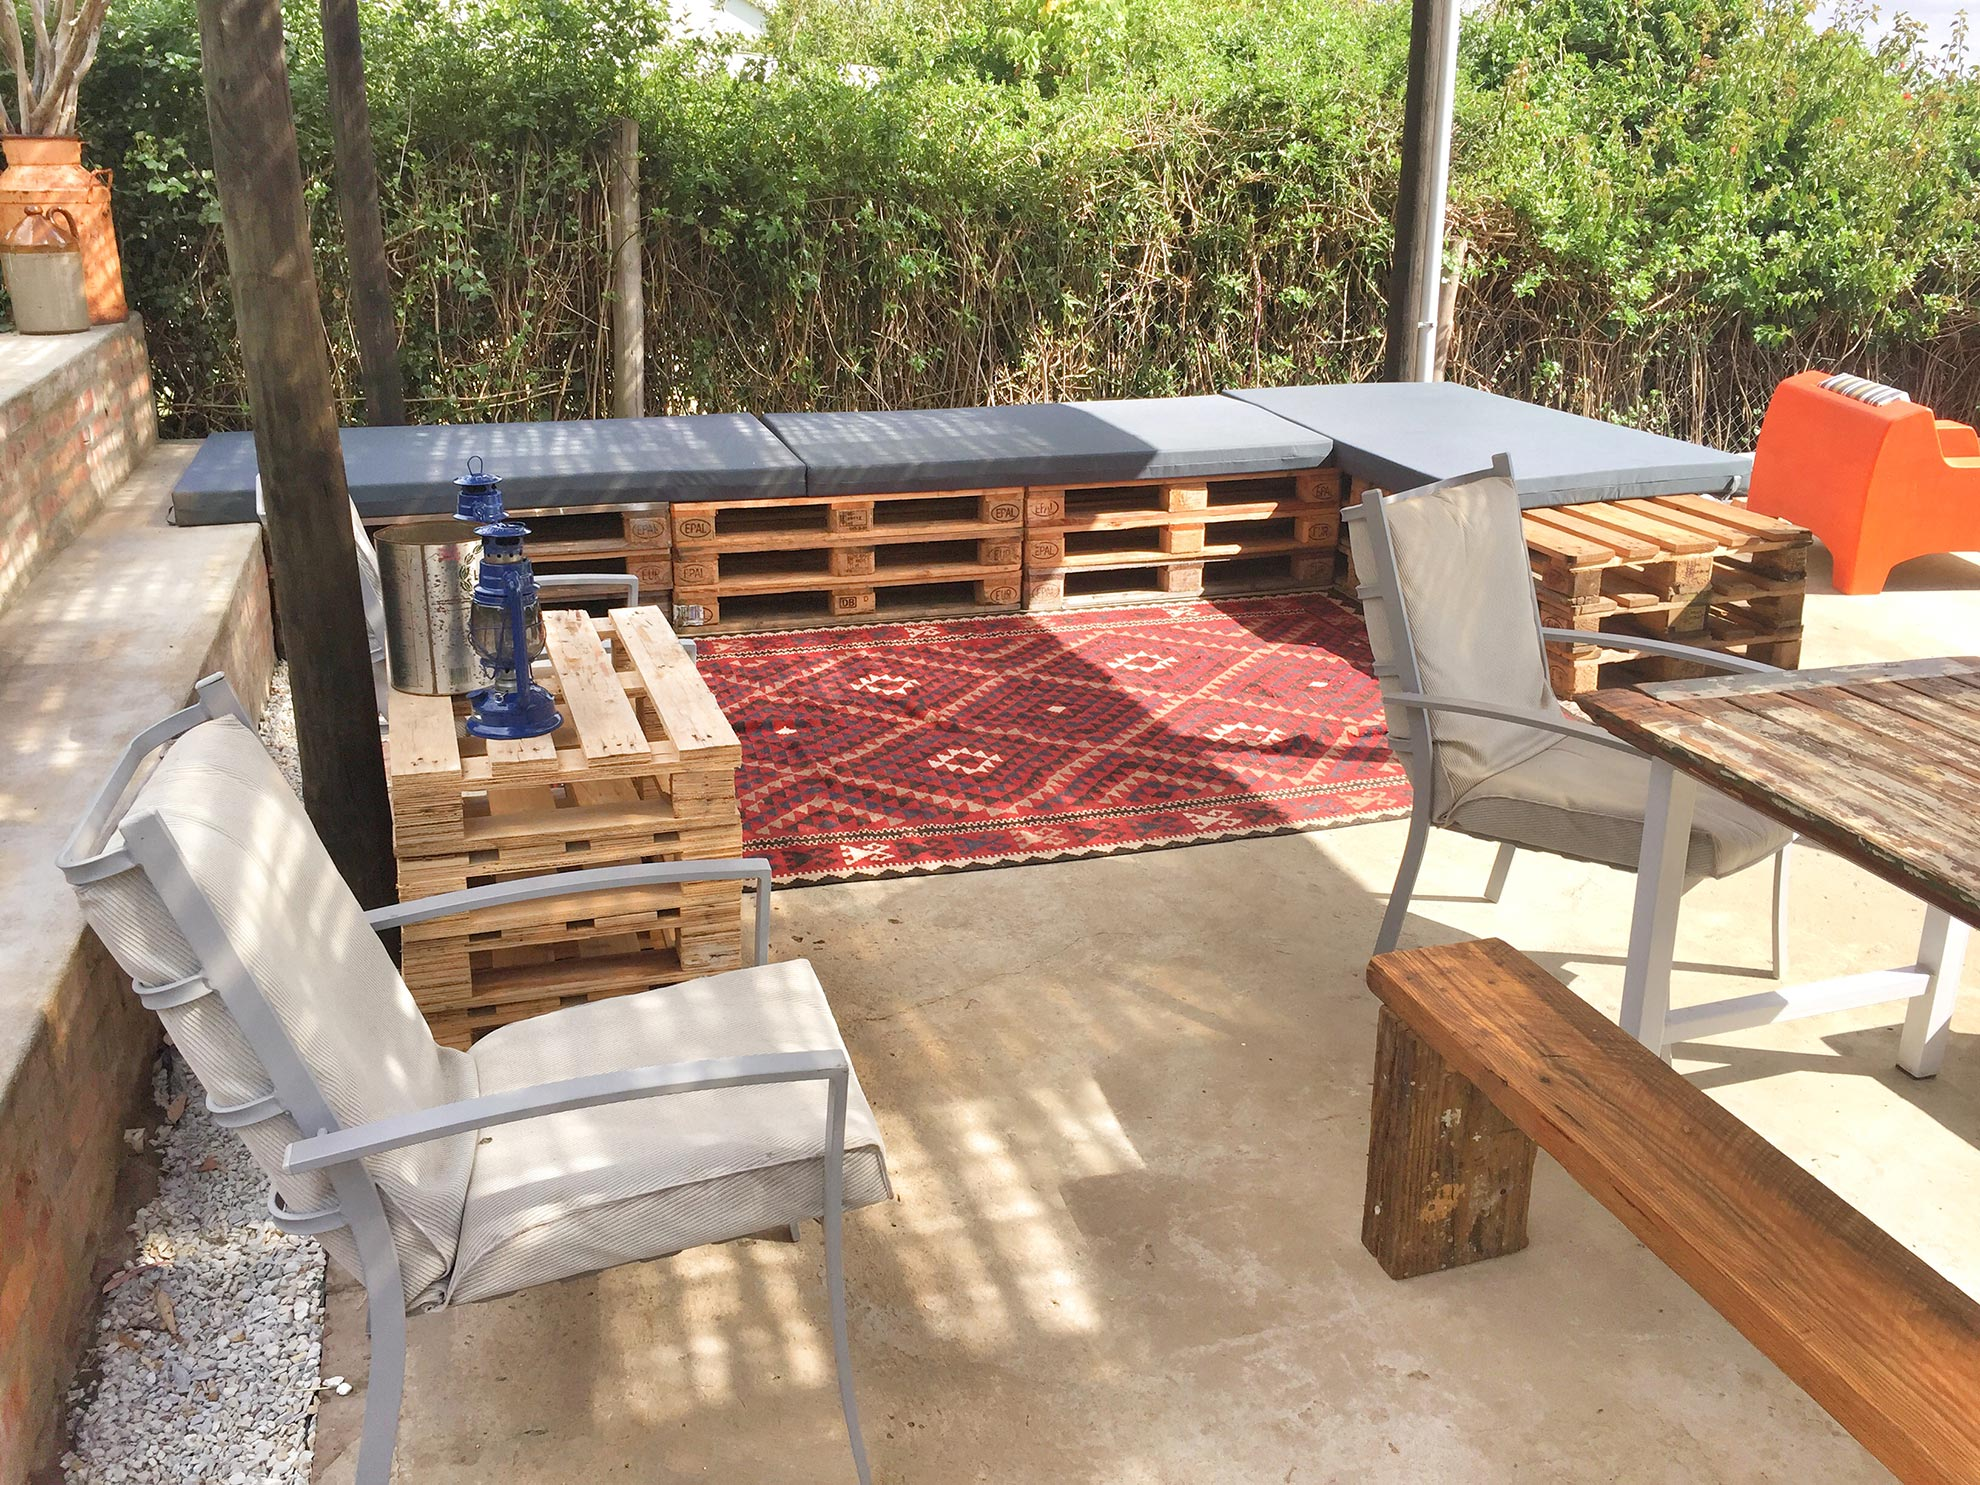 The deck area offers ample seating